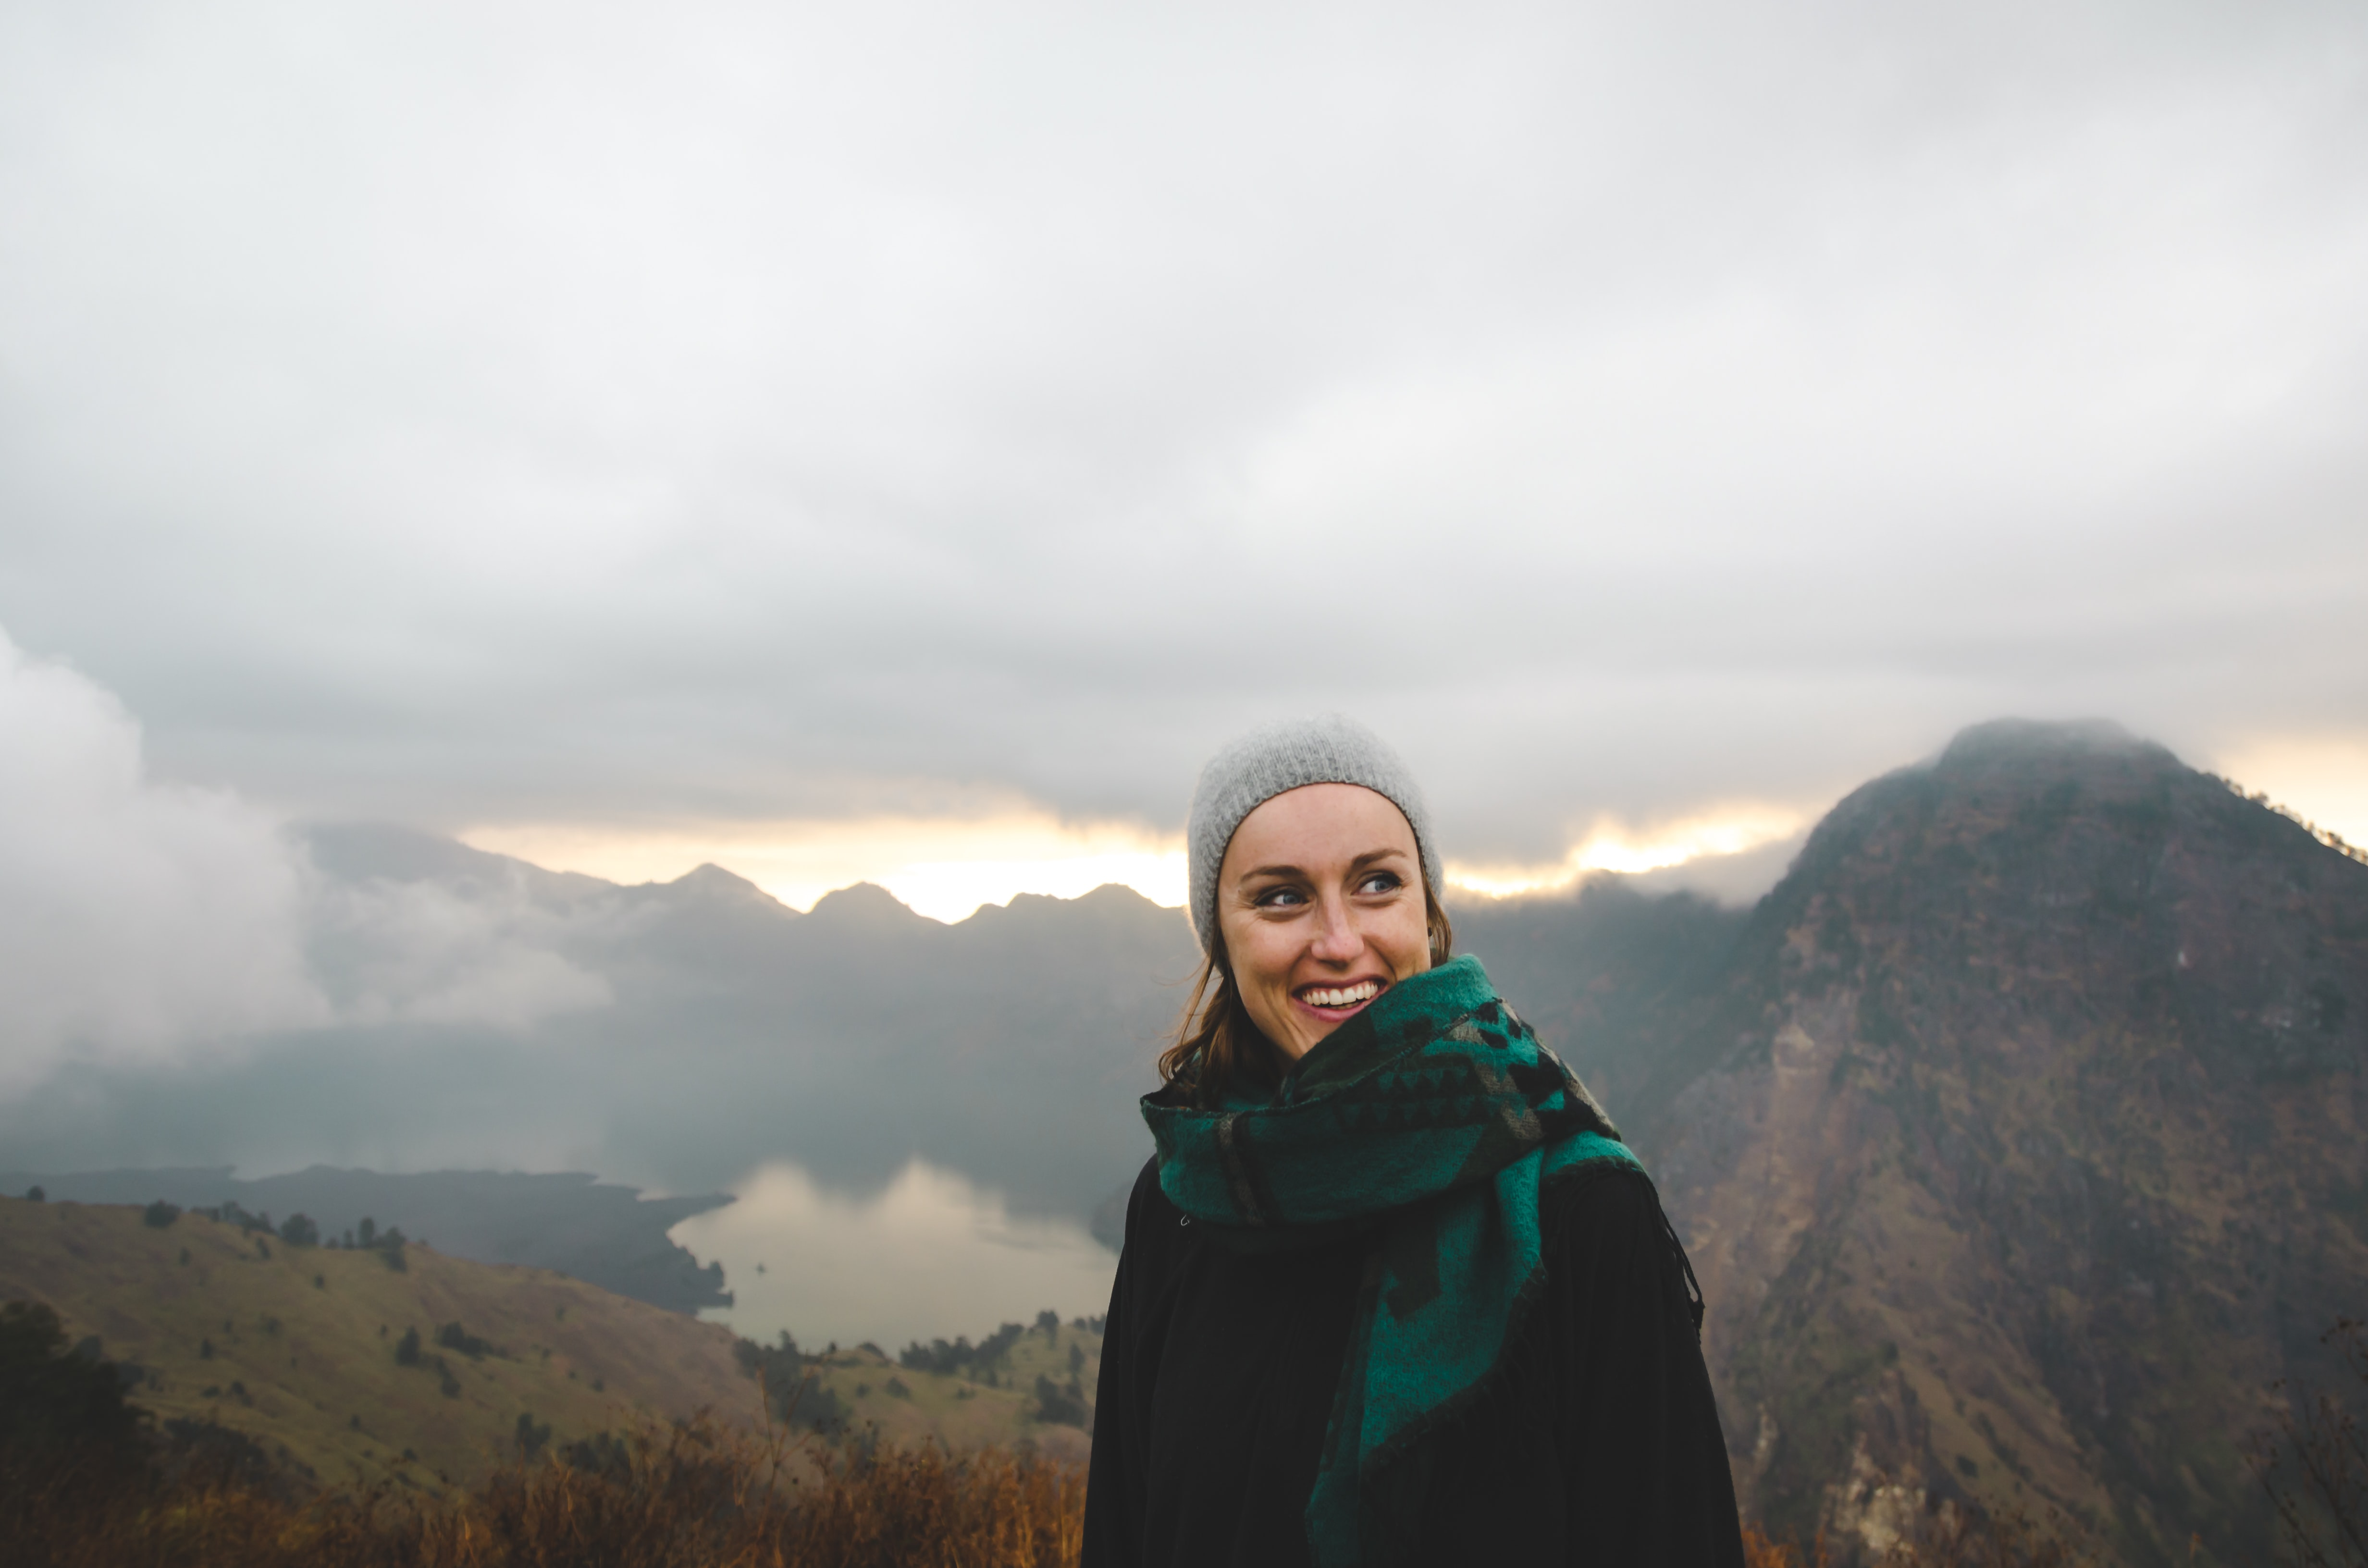 A woman wearing a scarf and a hat smiling atop a cloudy Mount Rinjani